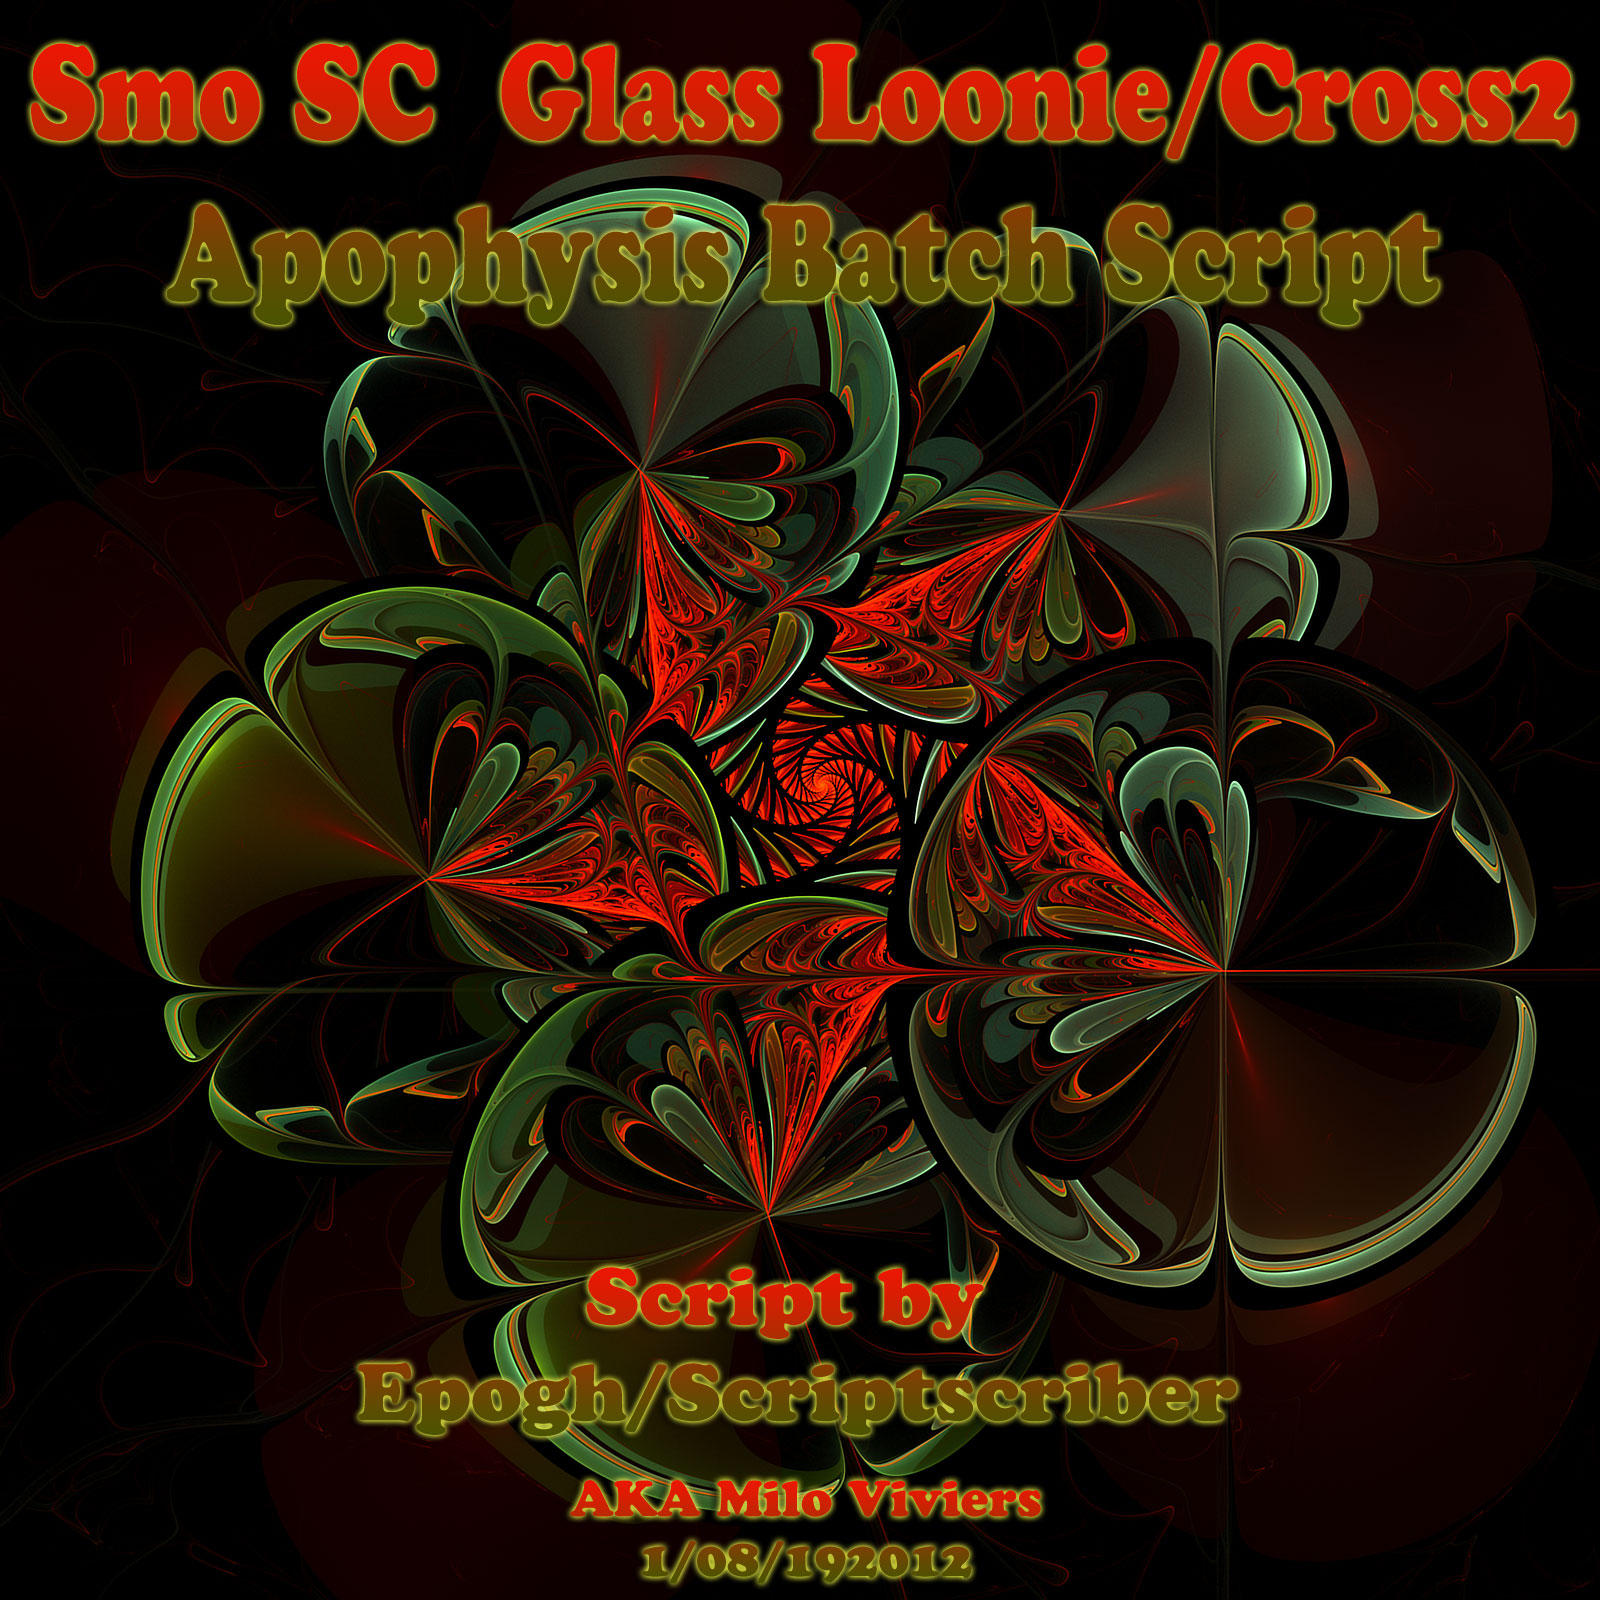 Smo SC  Glass Loonie/Cross2 Apophysis Batch Script by Scriptscriber